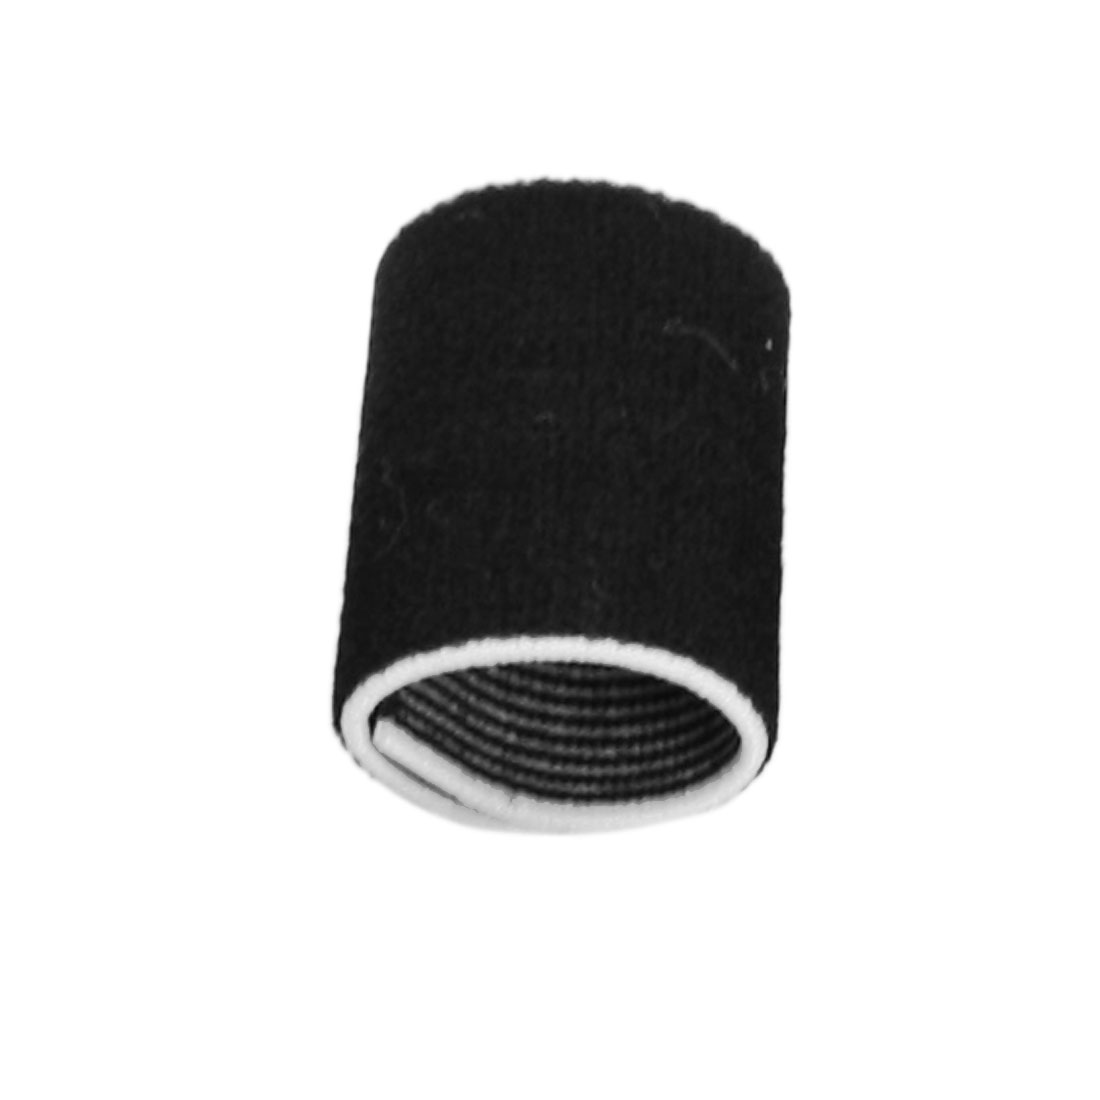 10 Pcs Elastic Black Sports Finger Wrap Sleeve